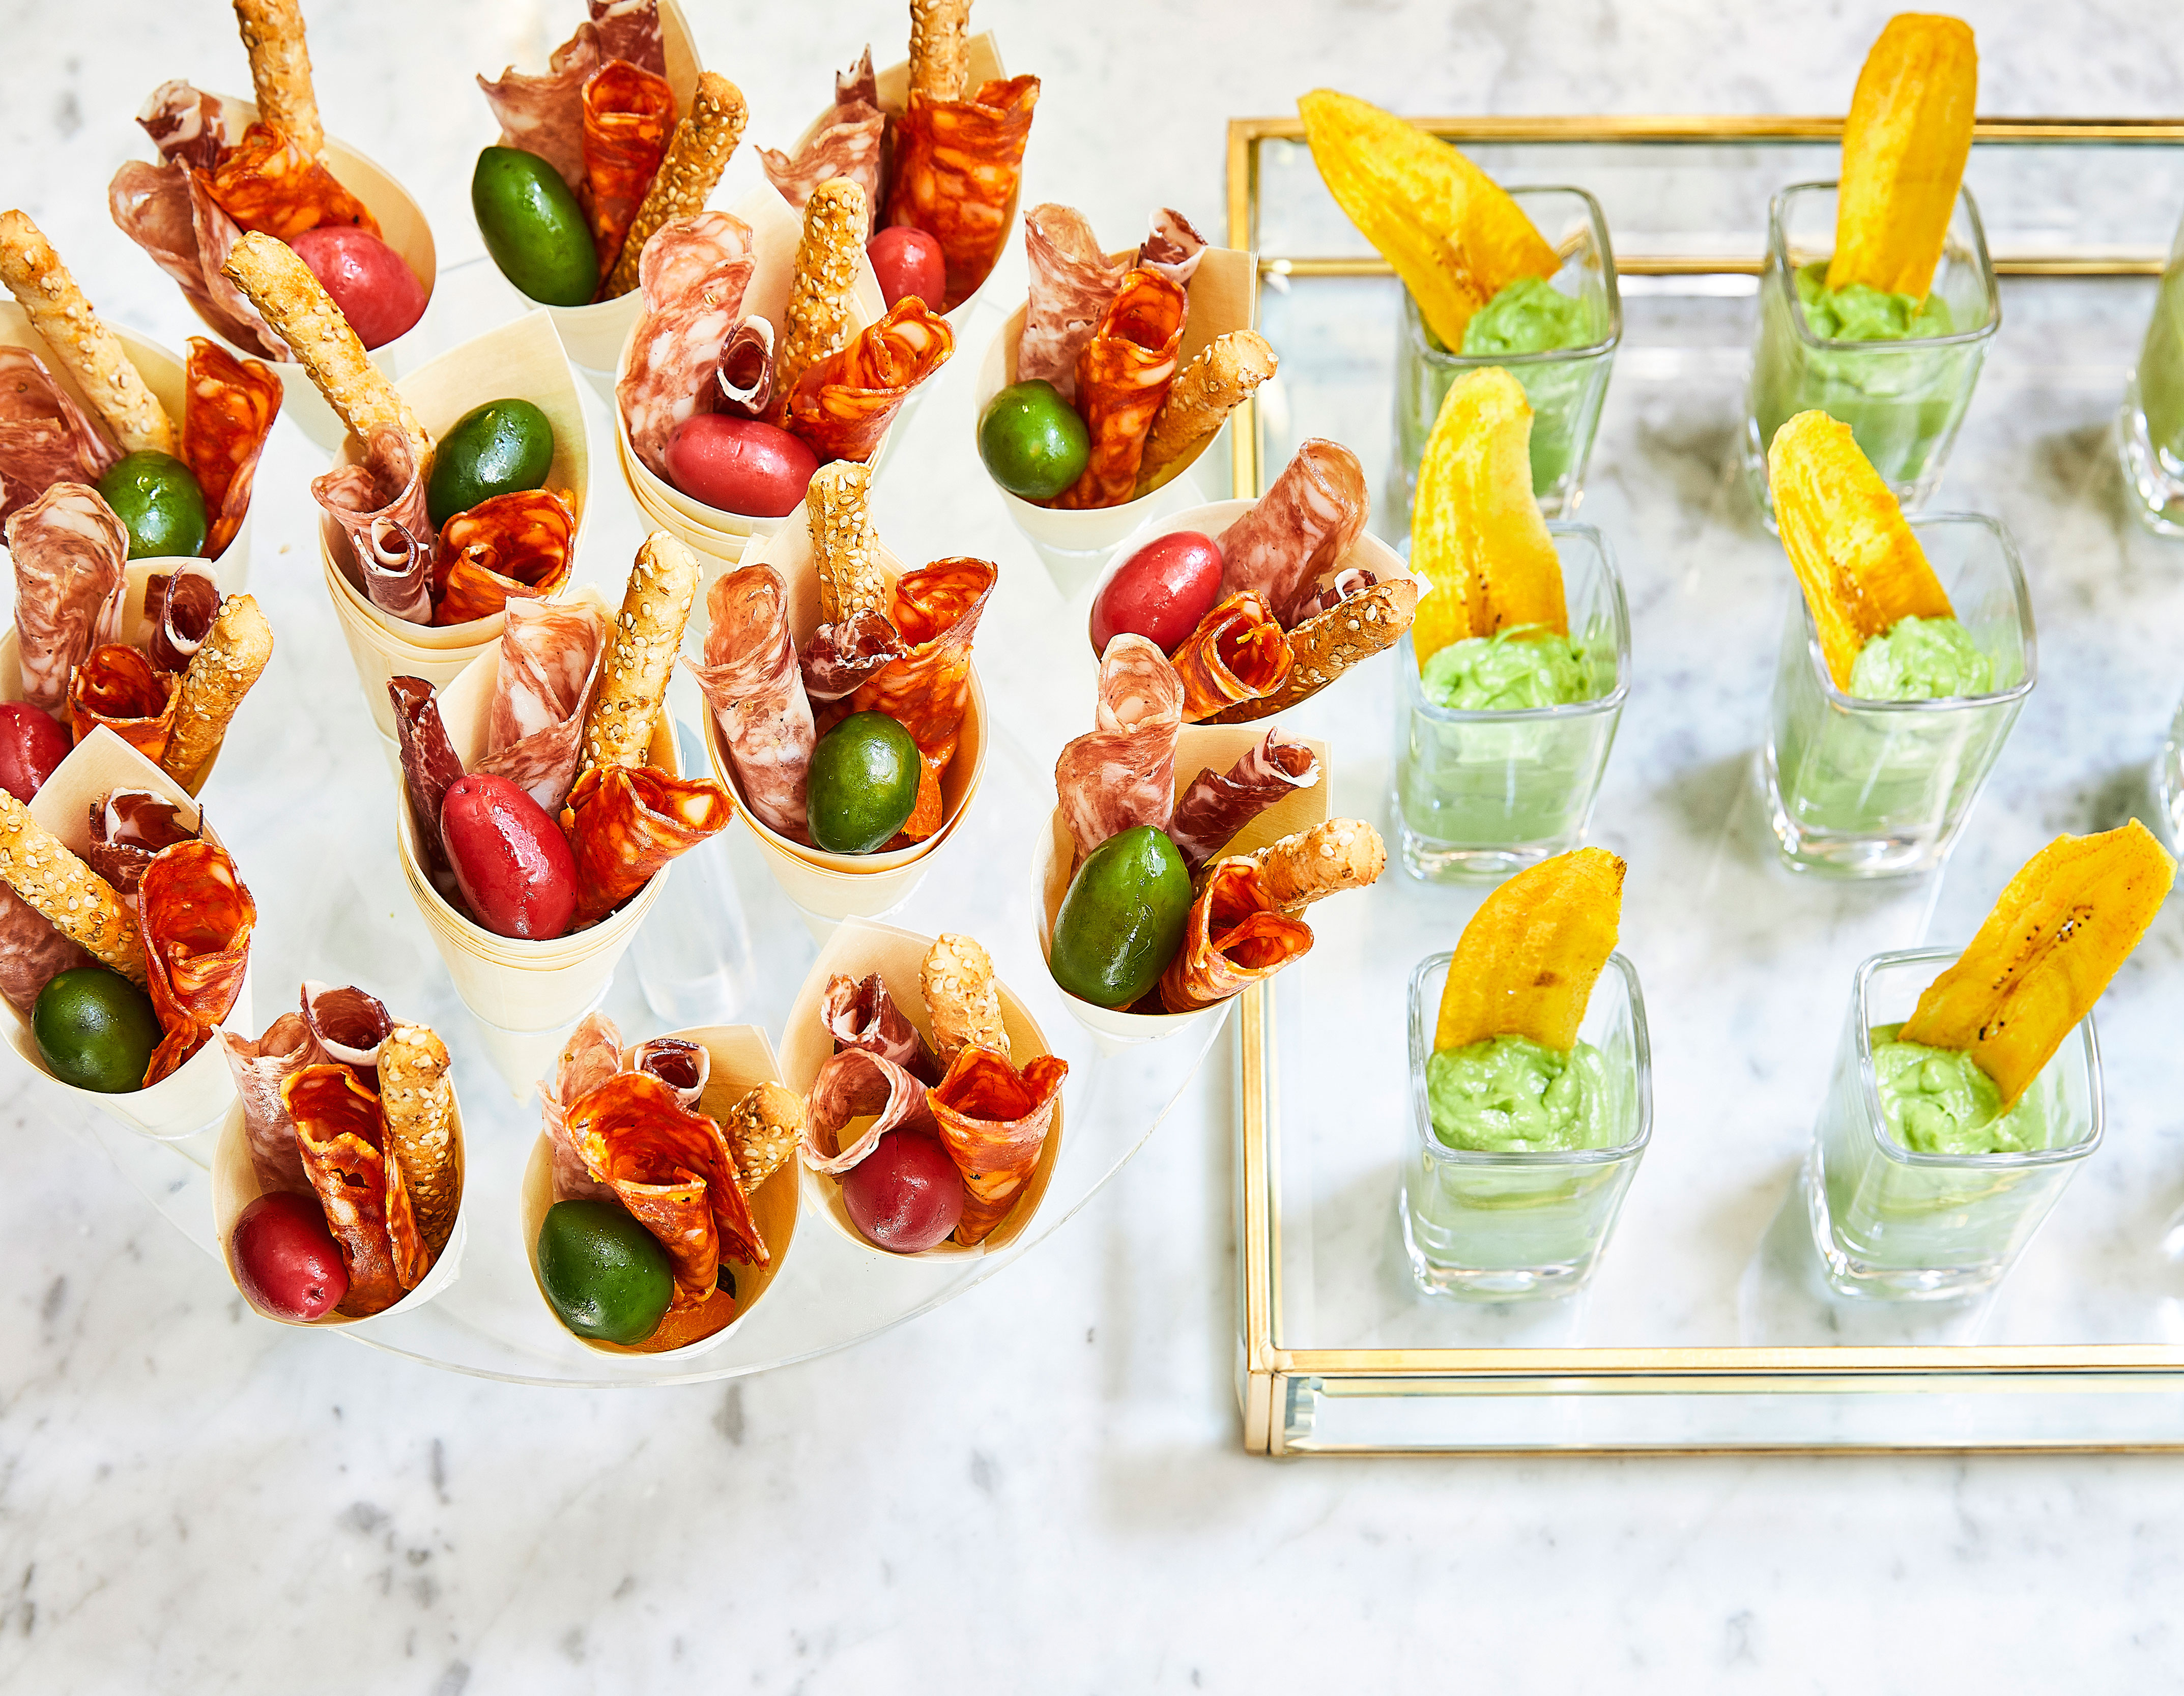 hors d'oeuvres set up on a glass platter